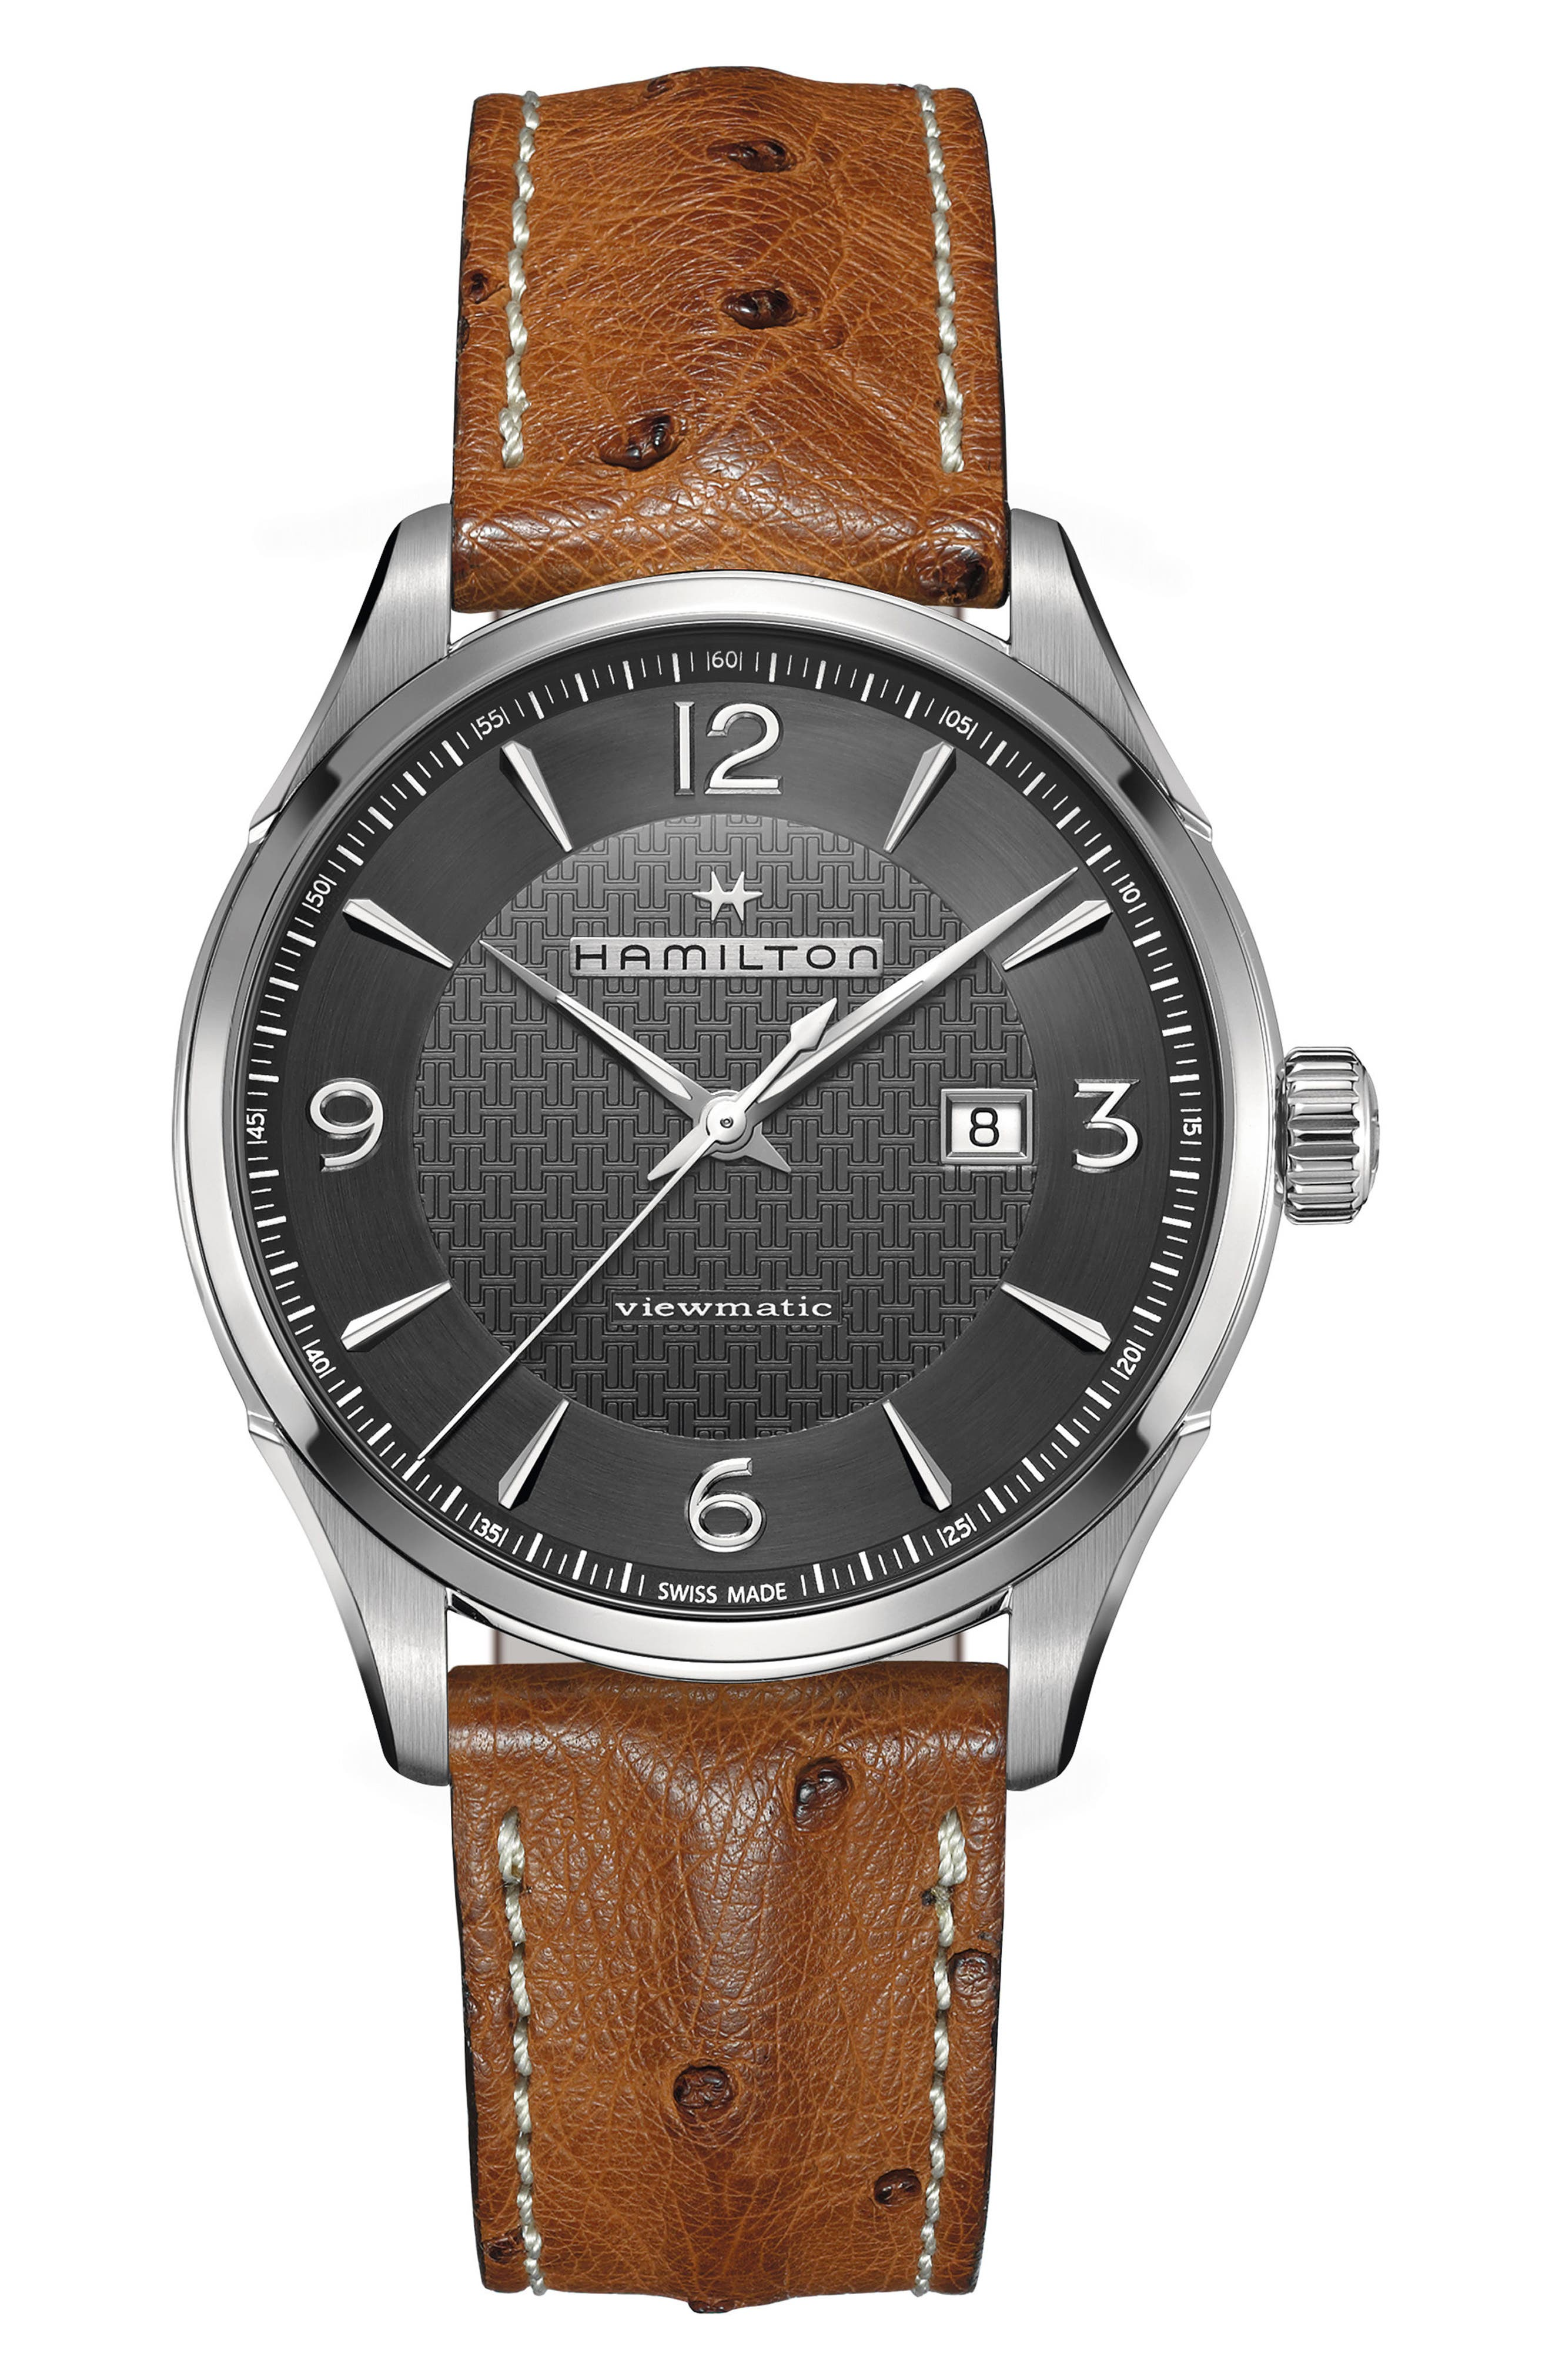 Jazzmaster Viewmatic Auto Ostrich Leather Strap Watch